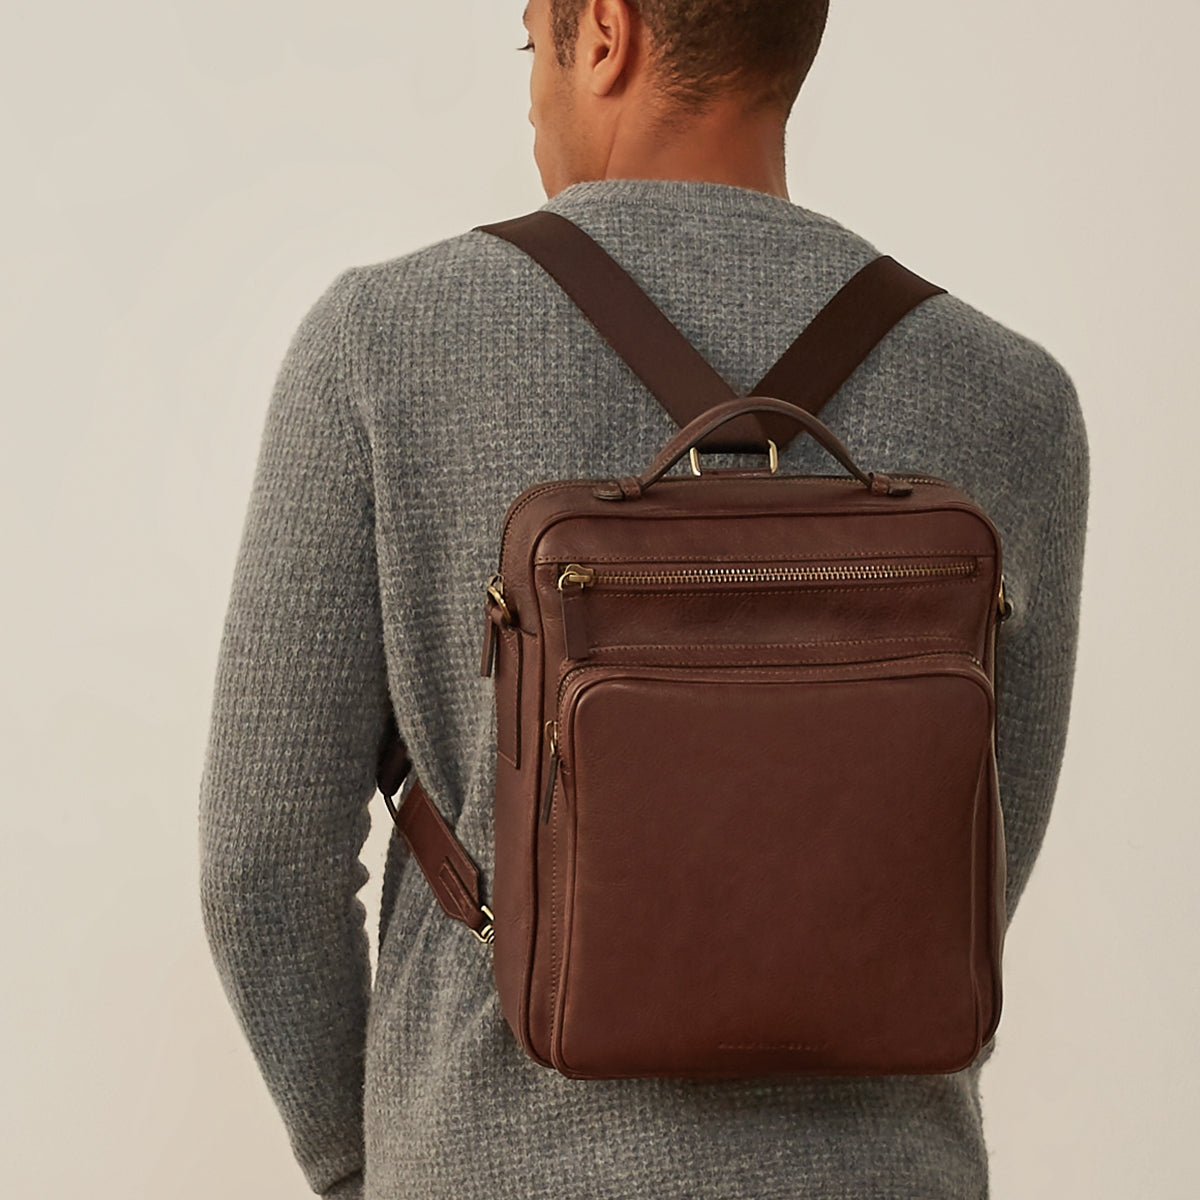 Image 9 of the 'SantinoL' Men's Brown Leather Convertible Backpack Shoulder